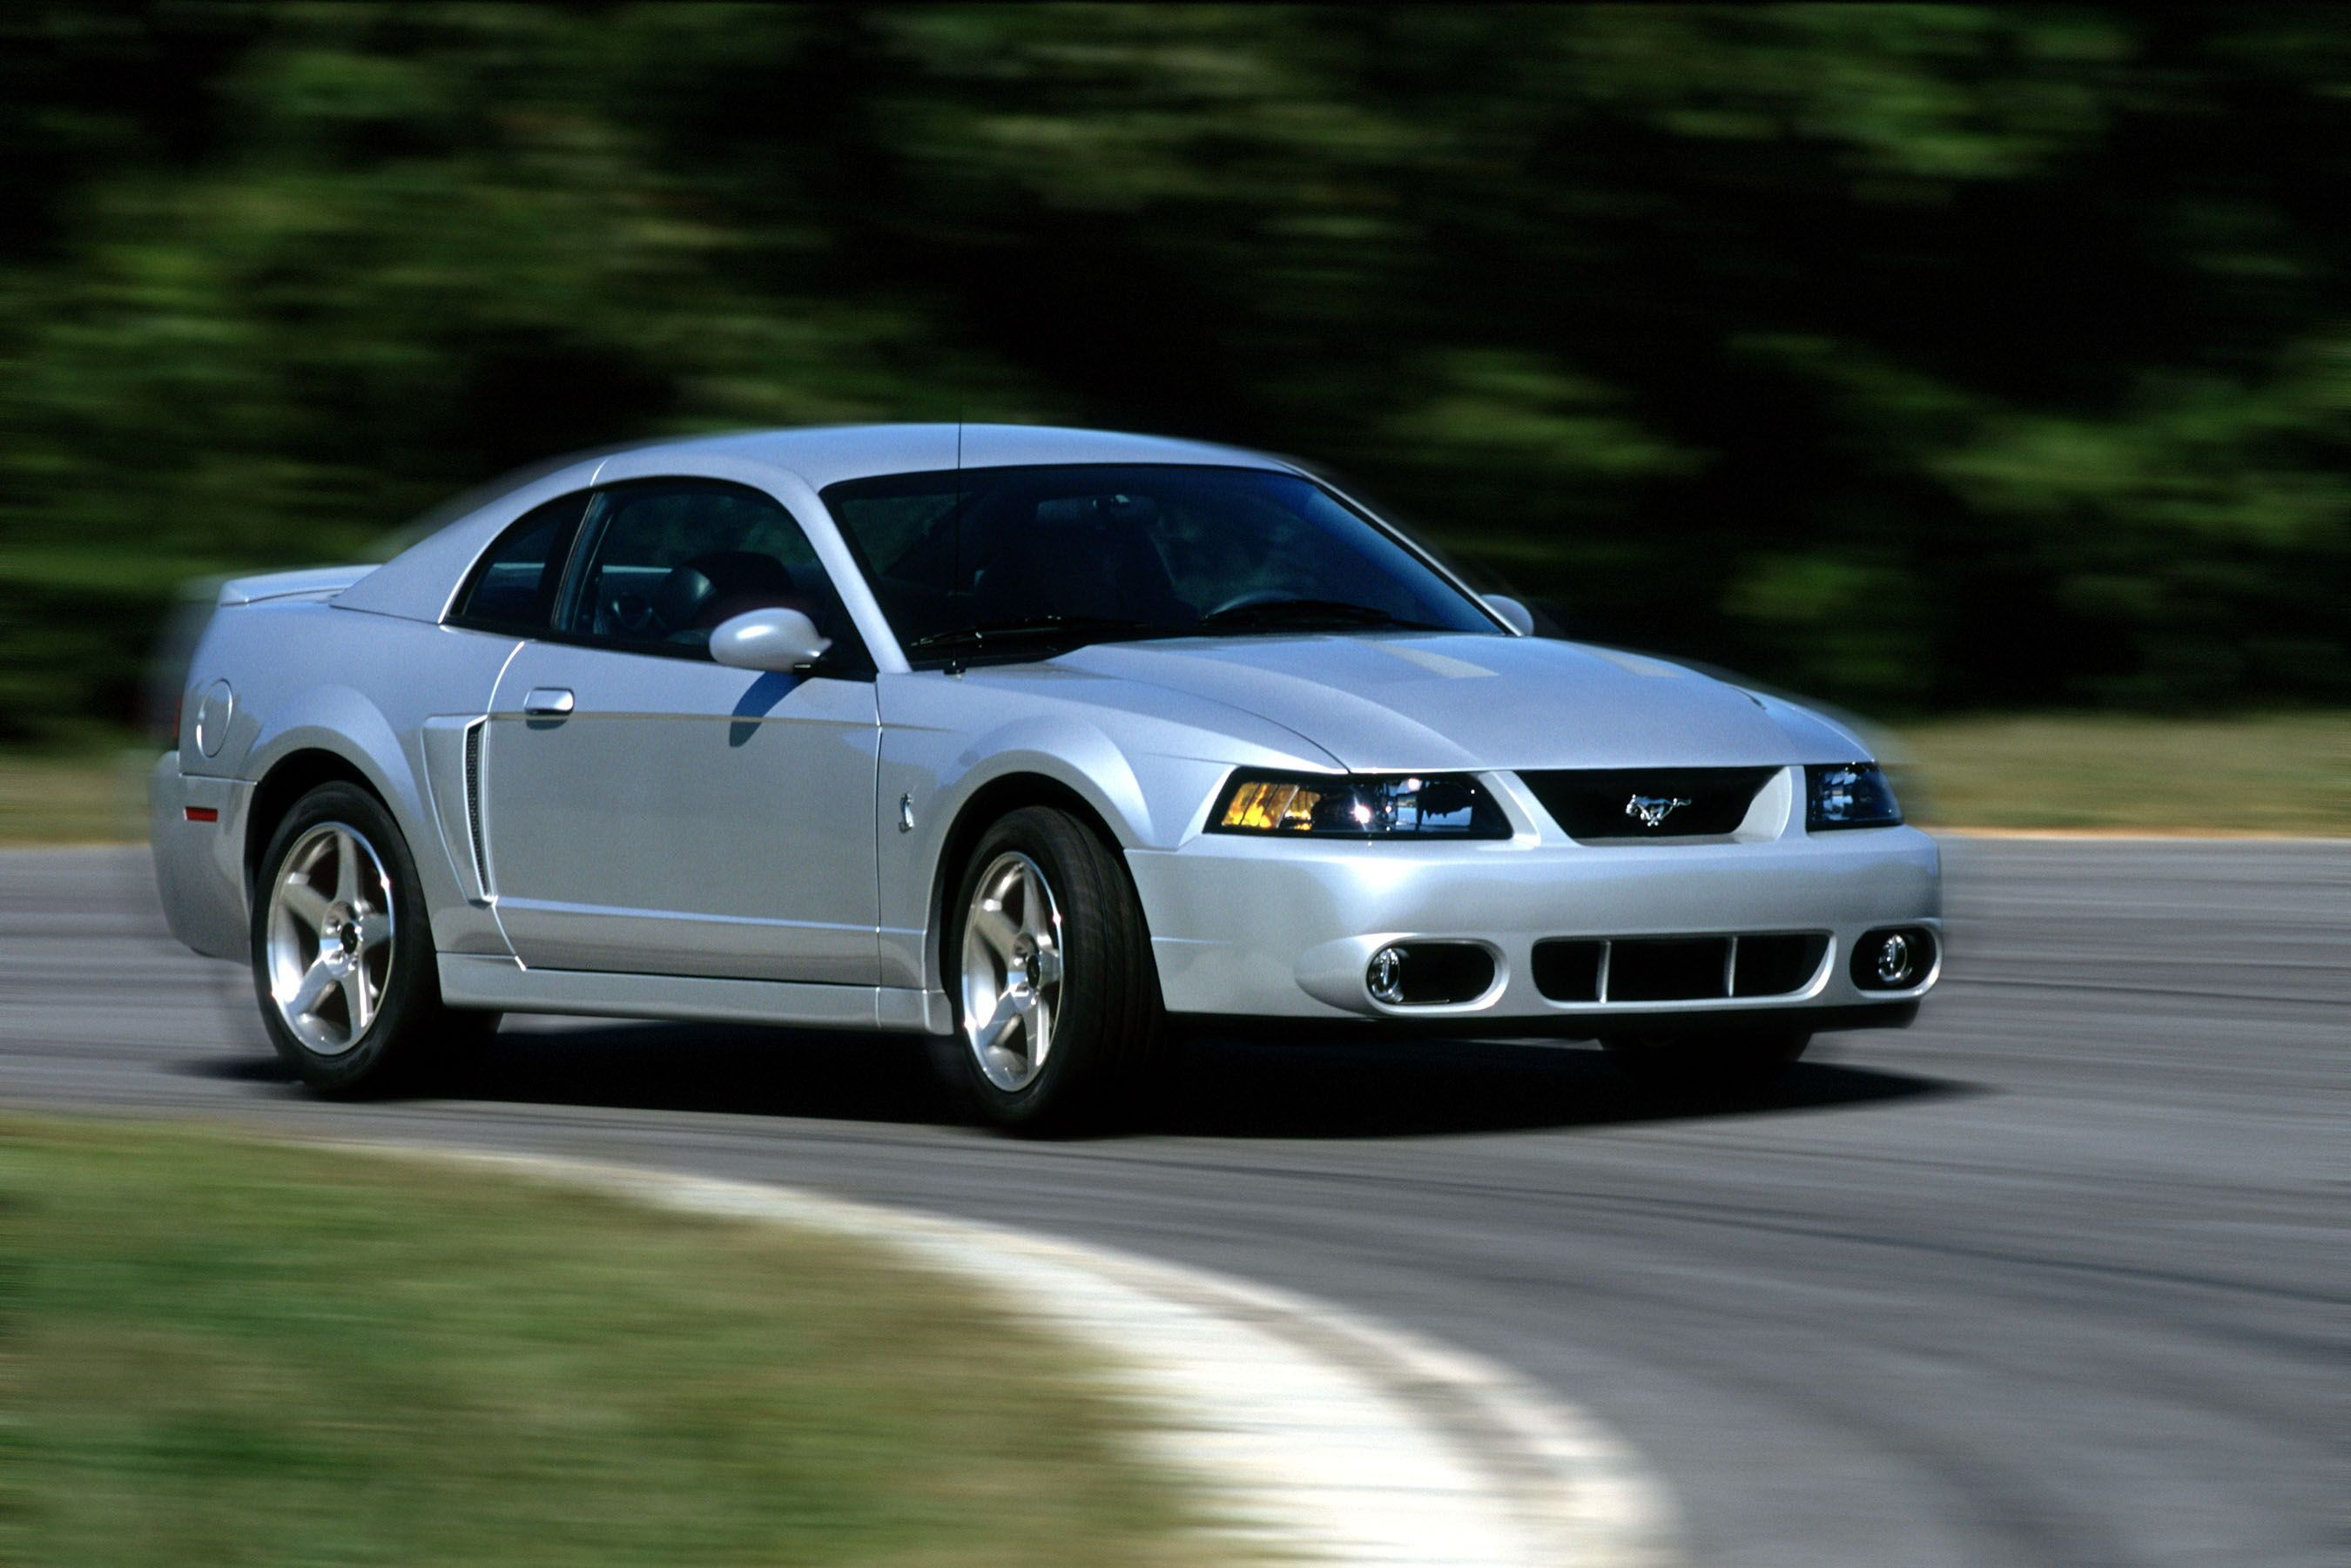 2003 2004 Ford Mustang Svt Cobra In 2020 2003 Ford Mustang Mustang Cobra 2004 Ford Mustang